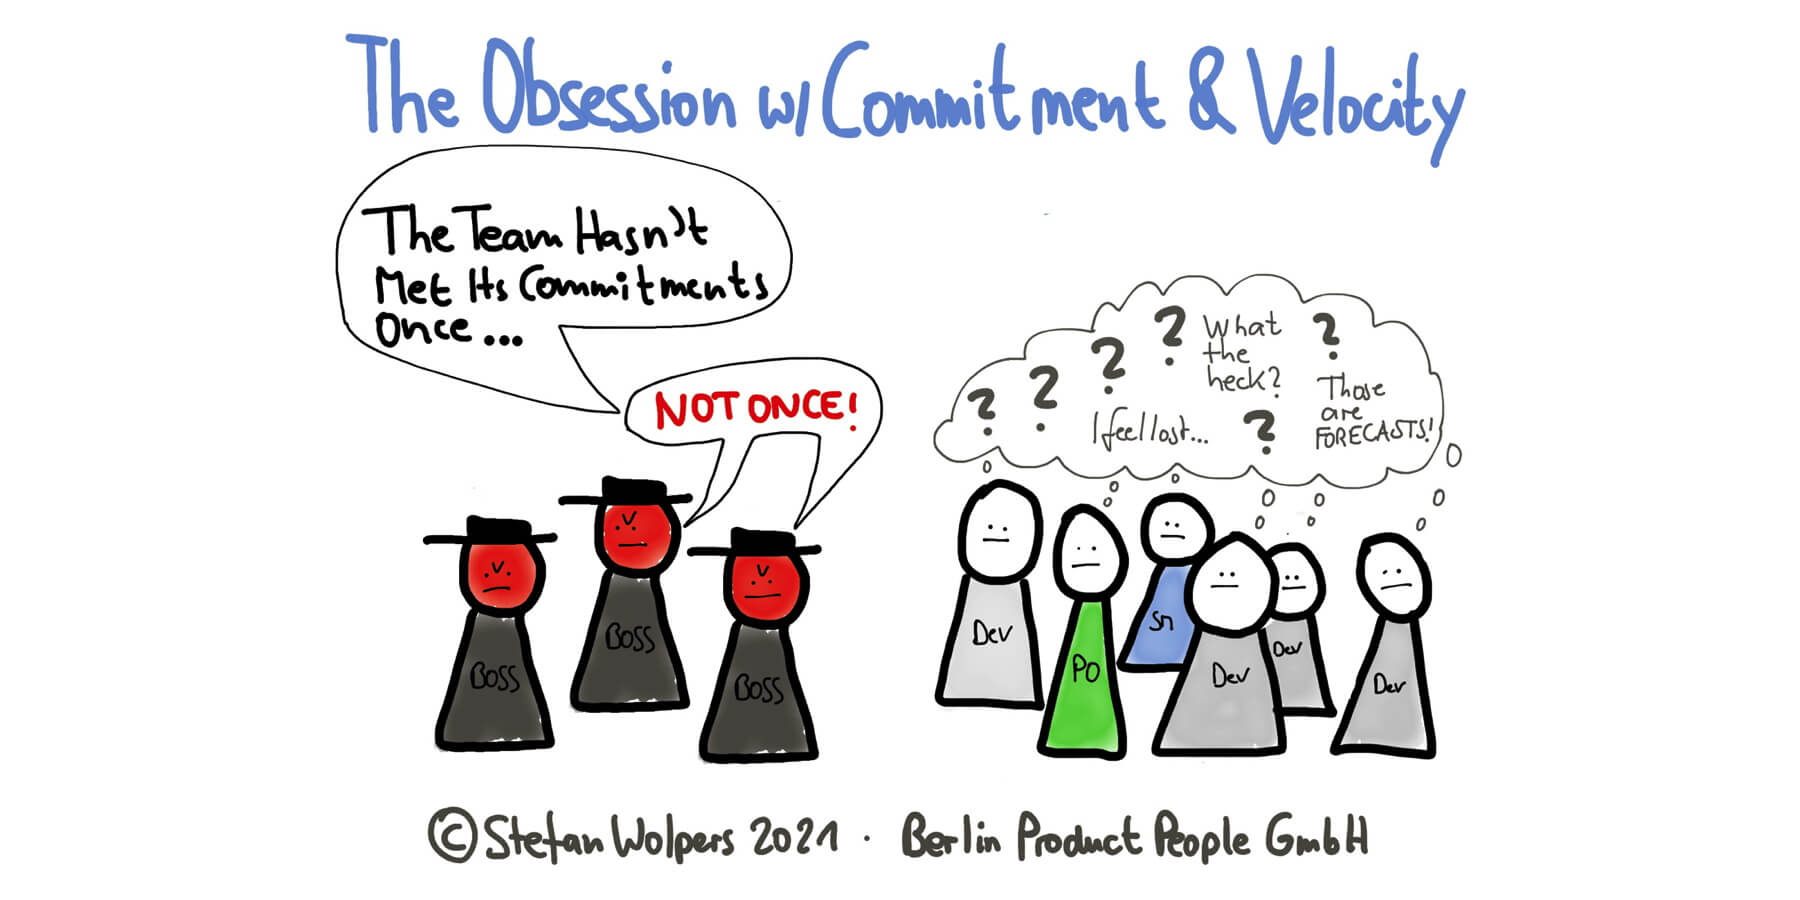 Scrum: The Obsession with Commitment Matching Velocity